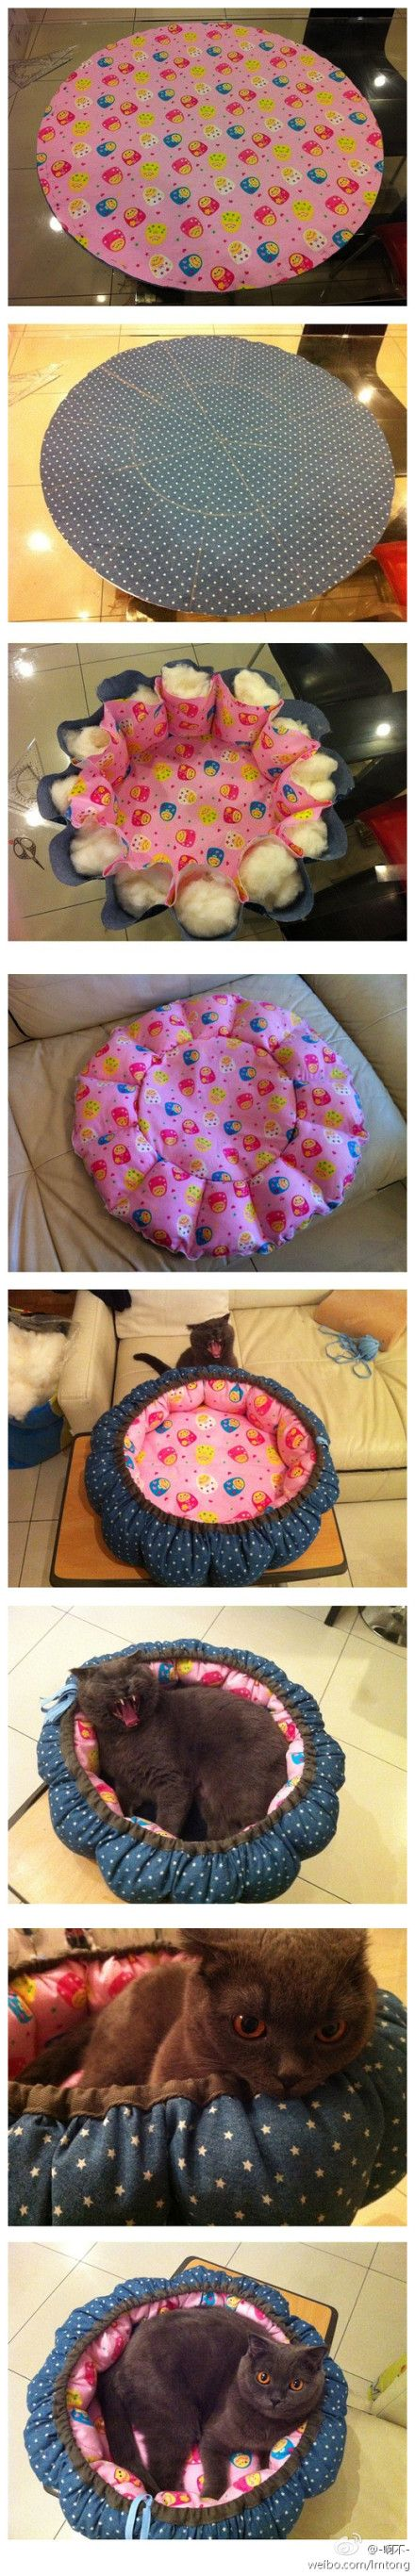 How to make a cat or dog bed (Diy Pillows Pet)